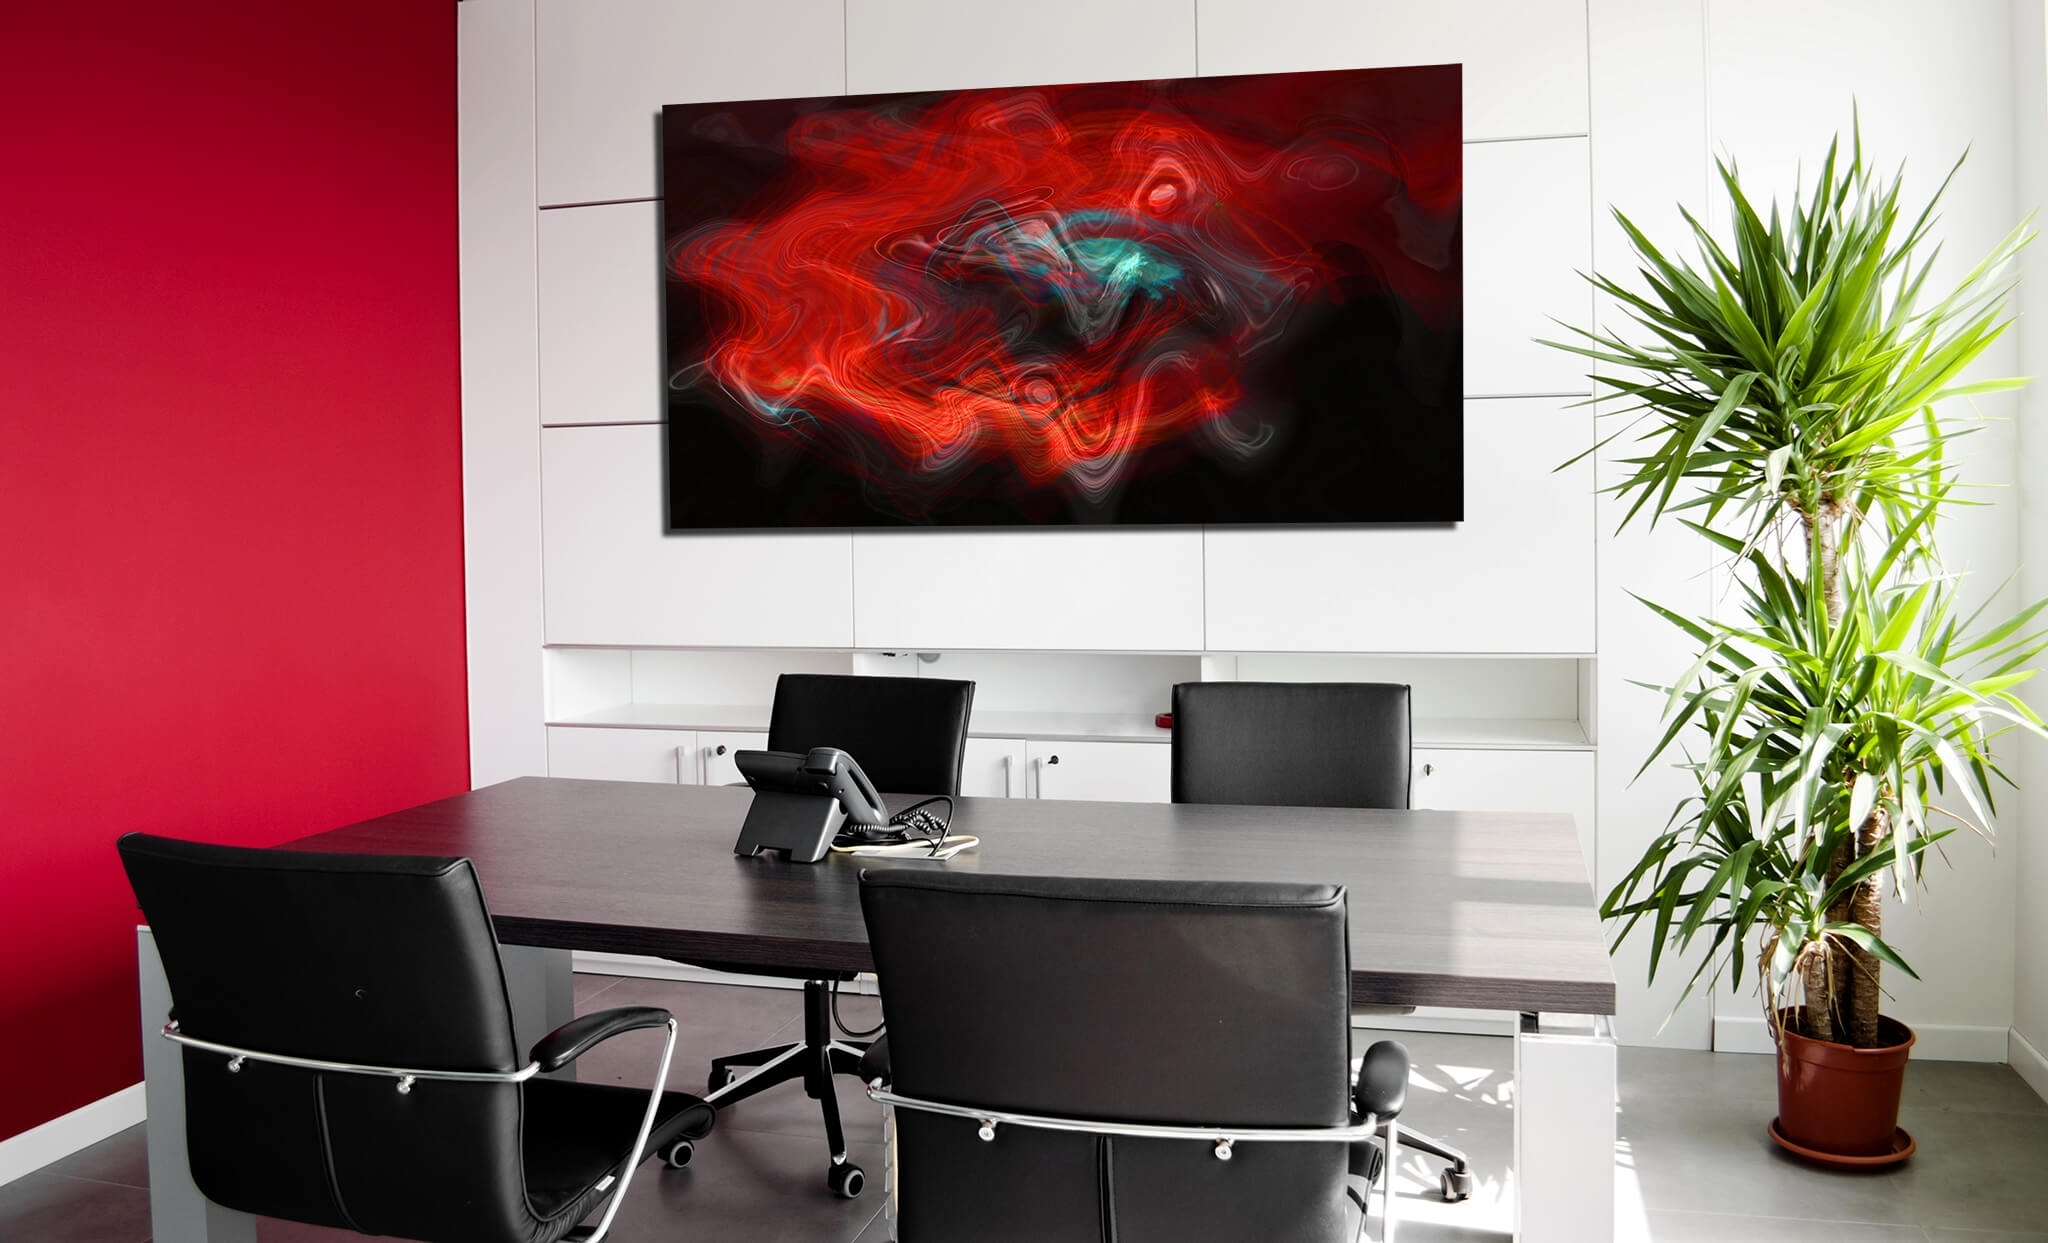 Wall Art: Lastest Collection Office Wall Art Ideas Art For Offices With Recent Abstract Wall Art For Office (View 20 of 20)